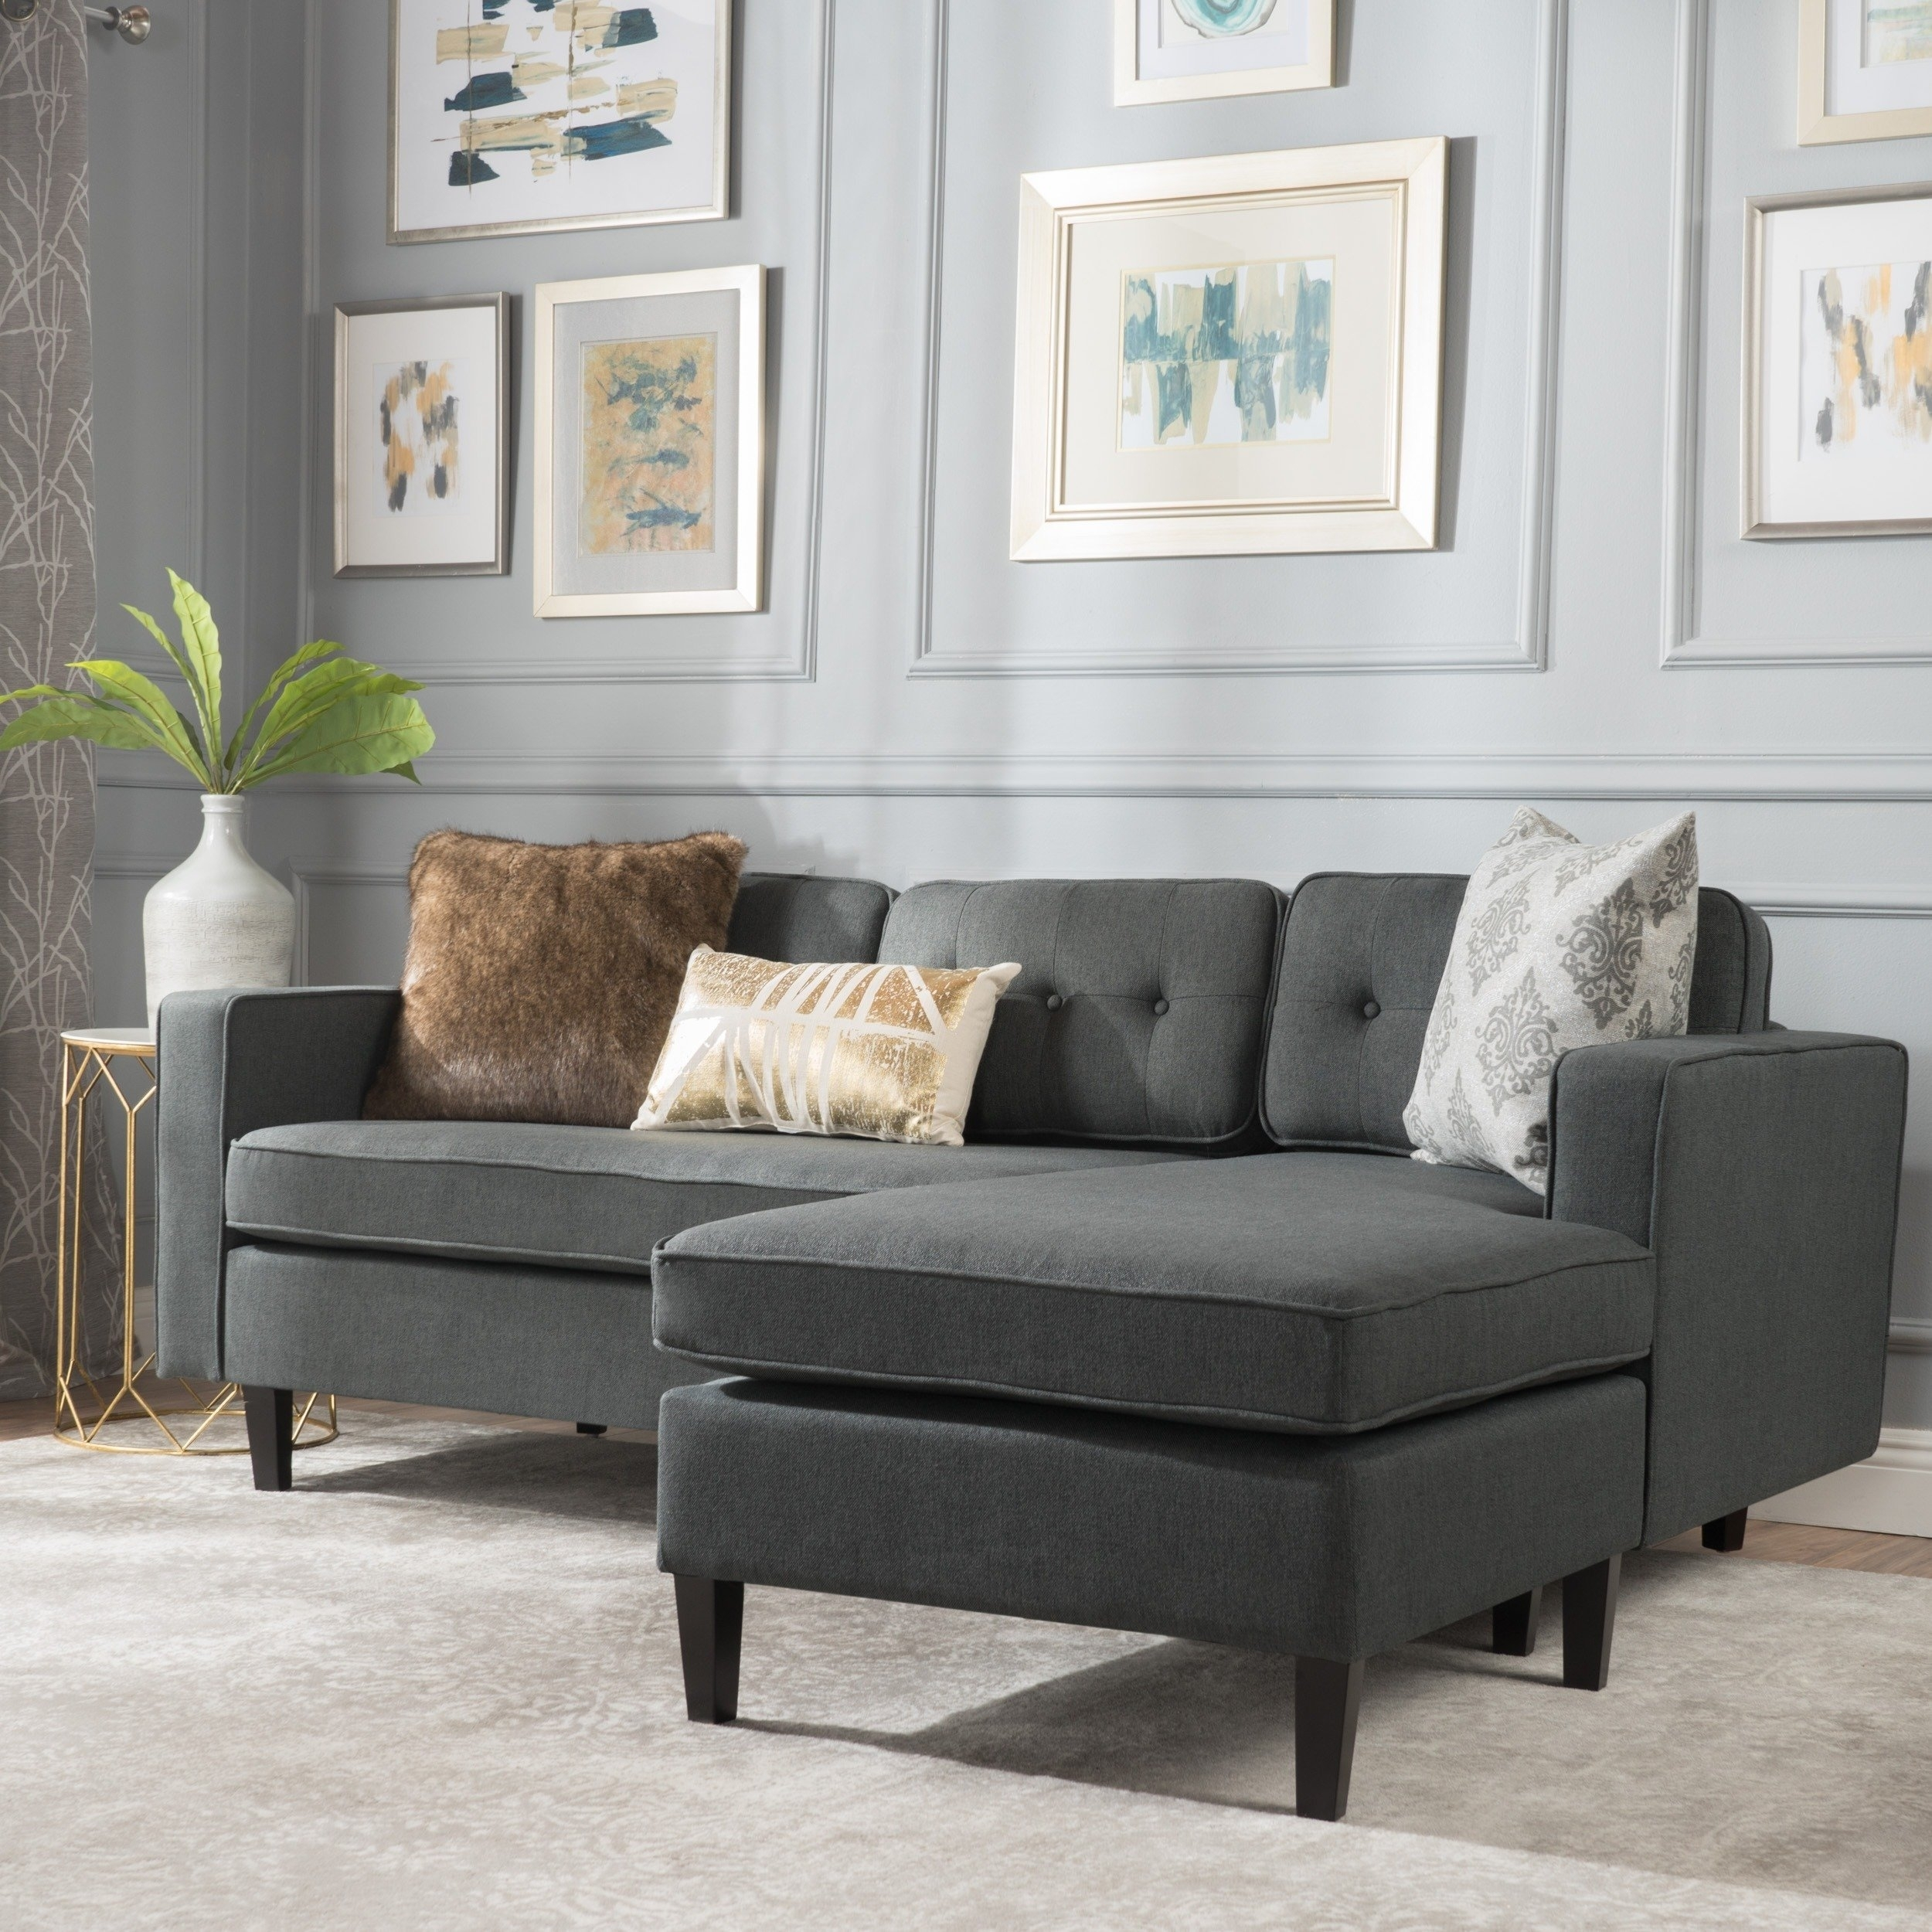 2 Piece Chaise Sectional Sofa | Baci Living Room within Evan 2 Piece Sectionals With Raf Chaise (Image 1 of 30)